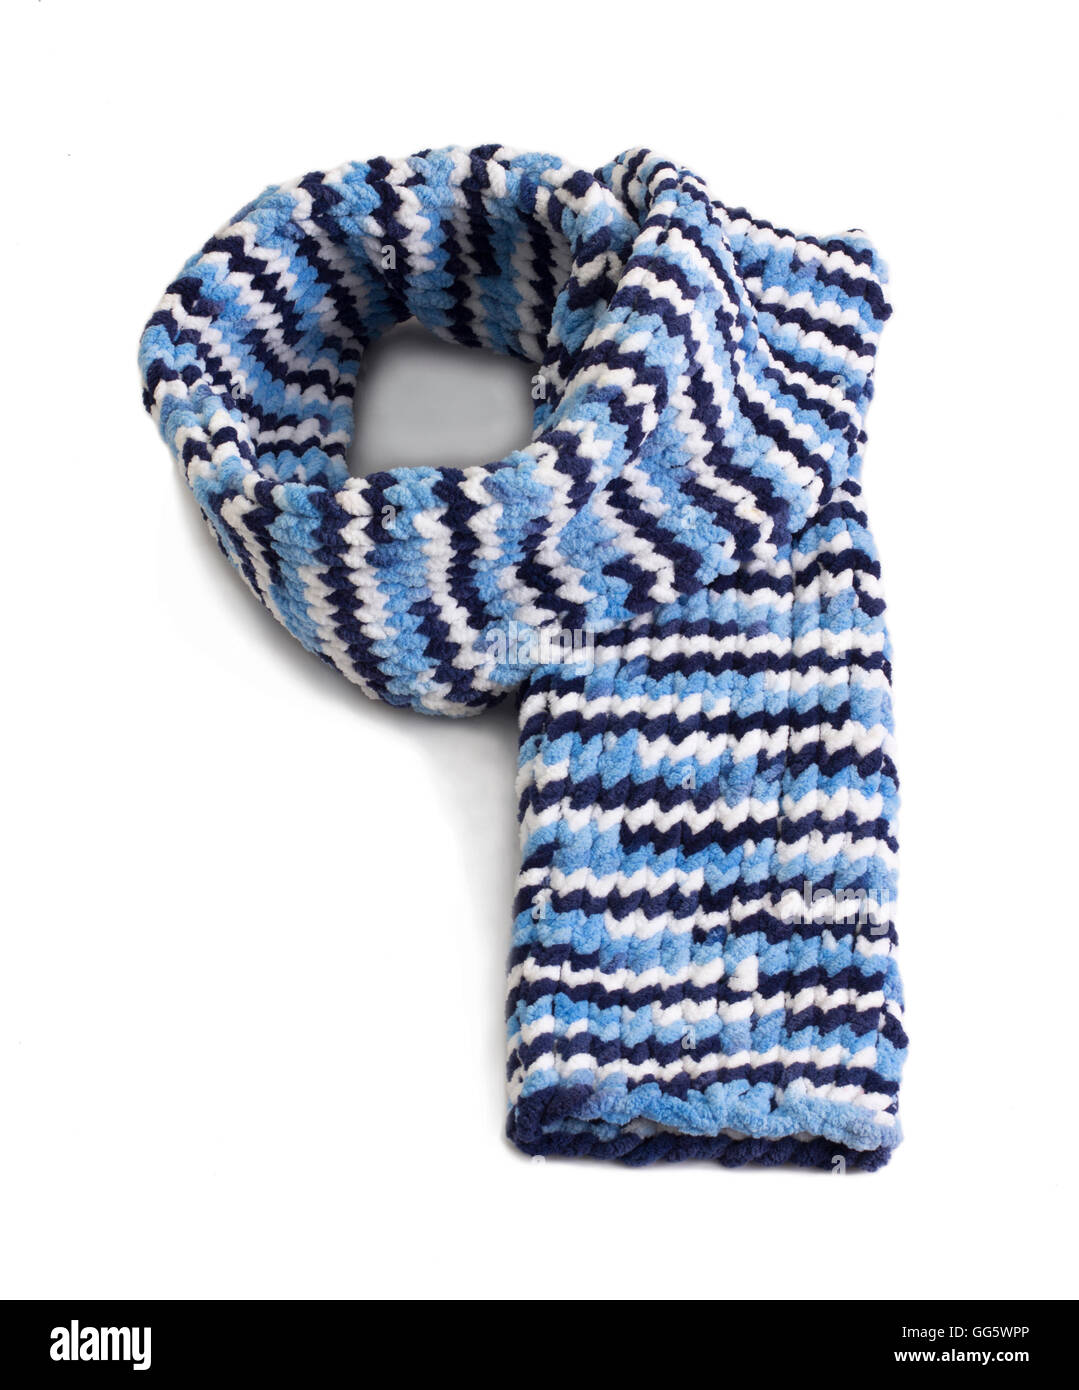 Colorful knitted wool scarf isolated on white background - Stock Image